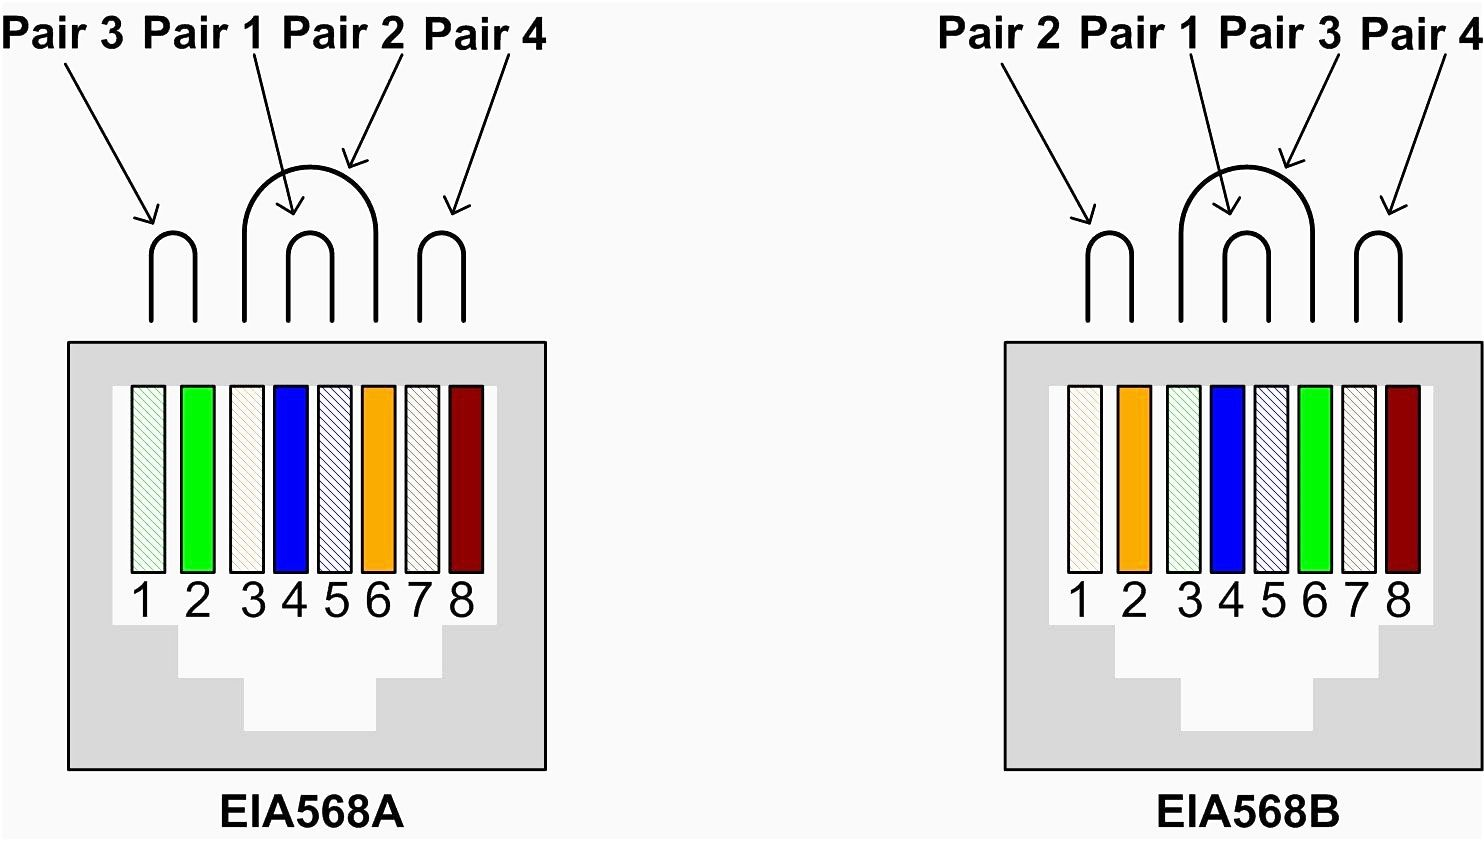 Rj45 Pinout Wiring Diagrams For Cat5e Or Cat6 Cable